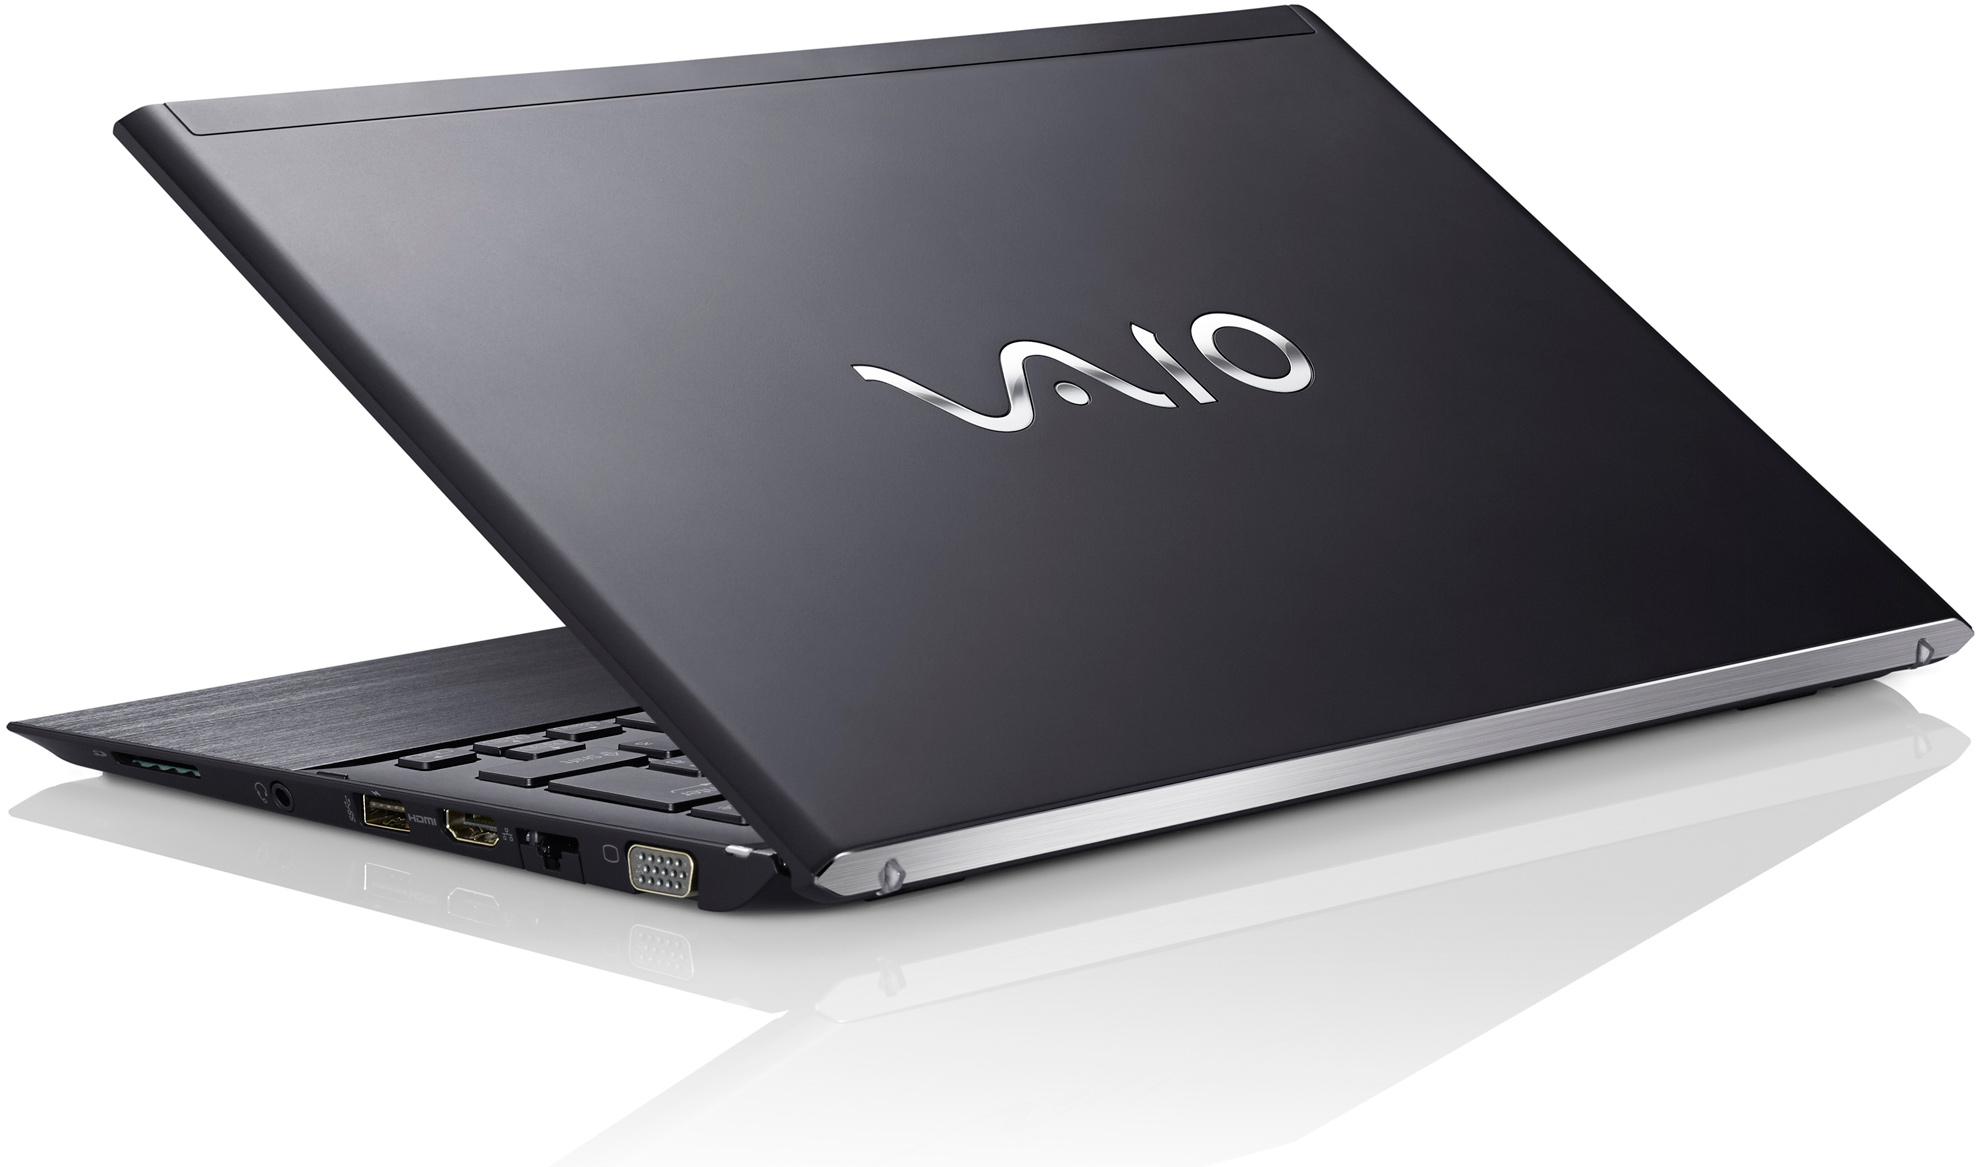 Most Popular Laptops Vaio To Start Selling Laptops In The U S This Spring